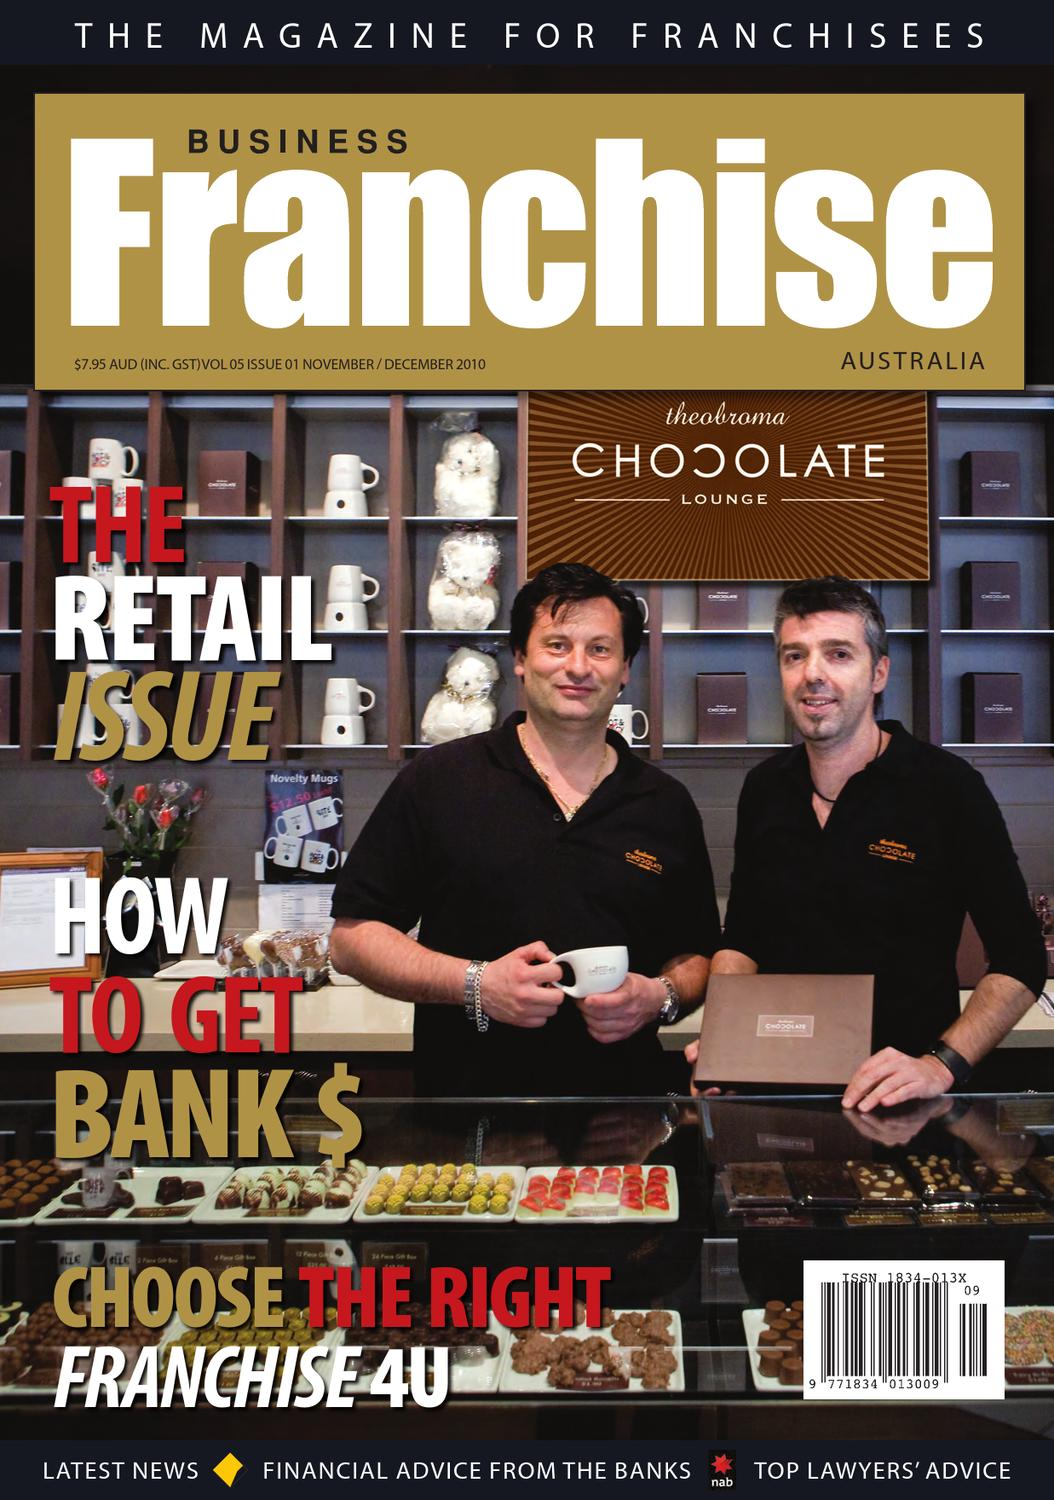 Business franchise aus nz nov dec 2010 by cgb publishing the biggest publisher of franchise publications issuu